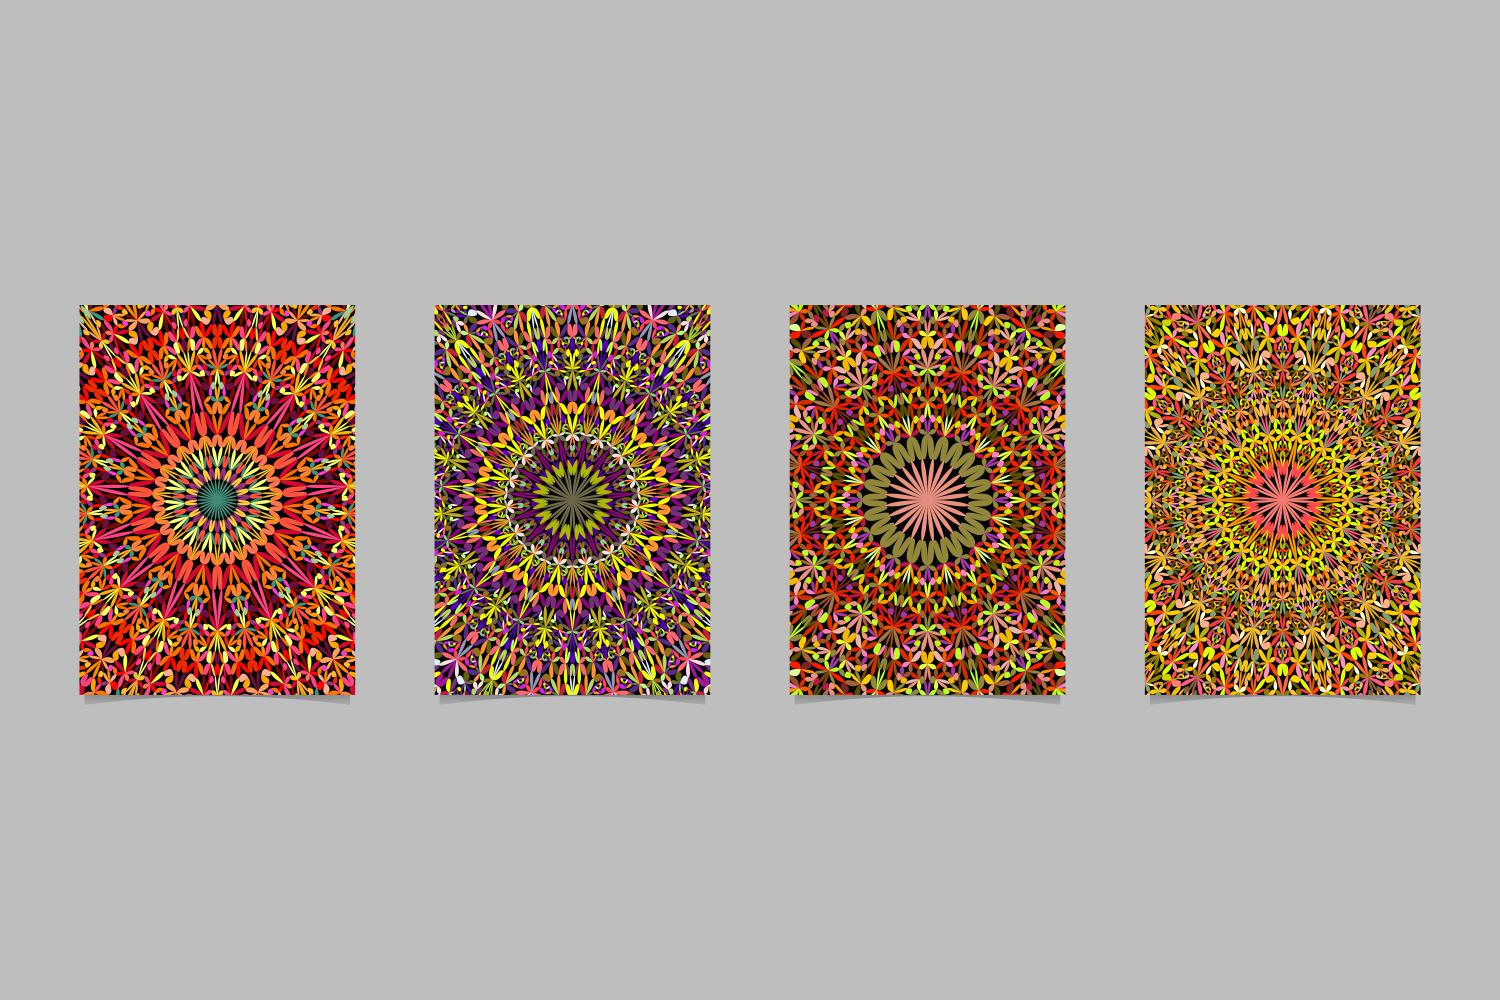 4 Floral Mandala Page Backgrounds Graphic By Davidzydd